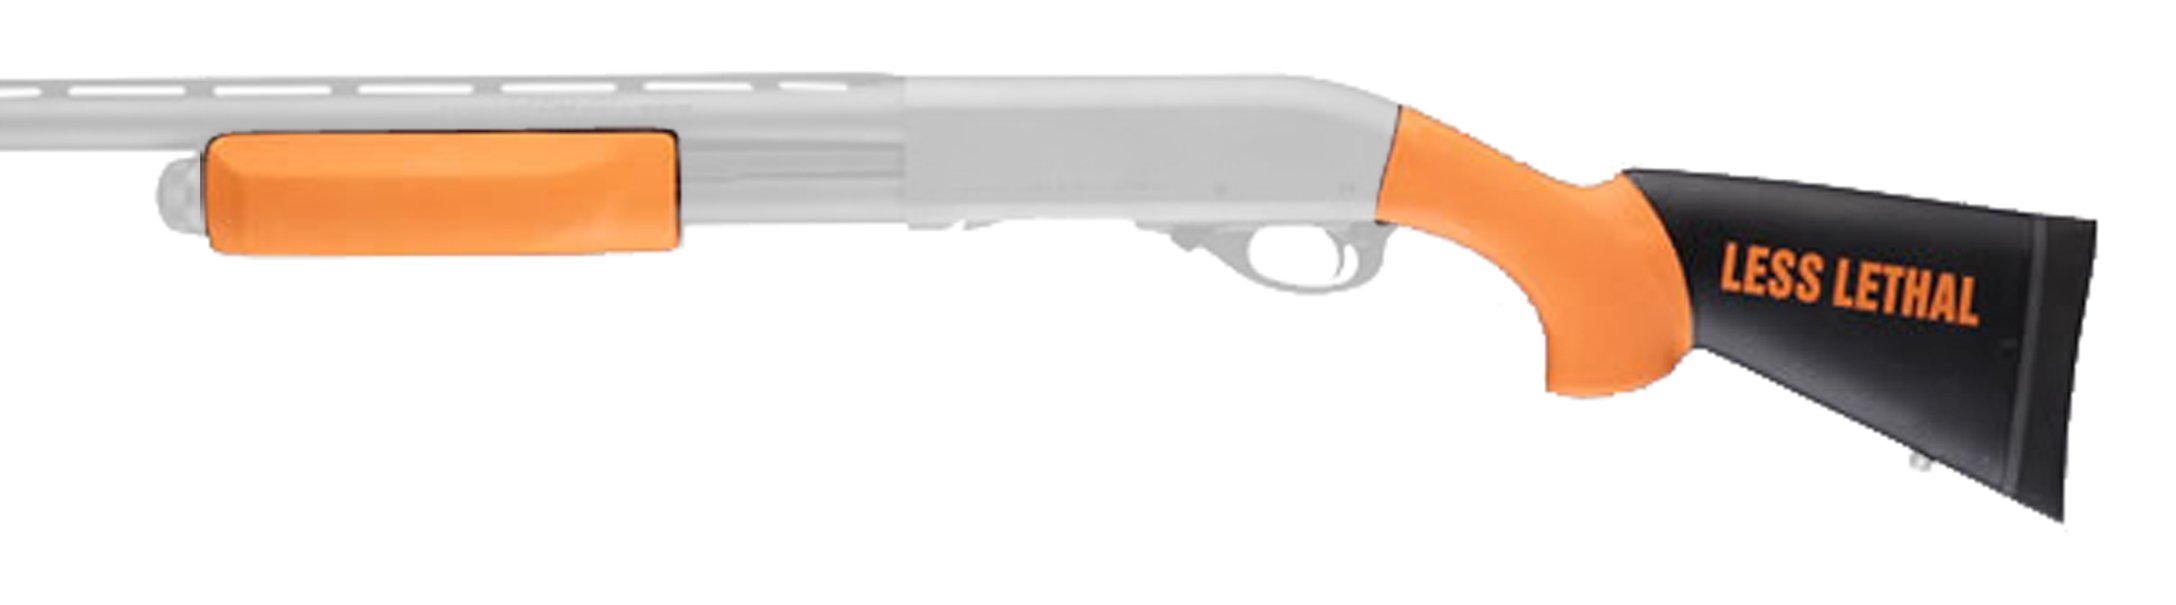 Hogue 08752 Remington 870 Less Lethal OverMolded Stock, W/Forend, 12'' Length of Pull, Orange by Hogue